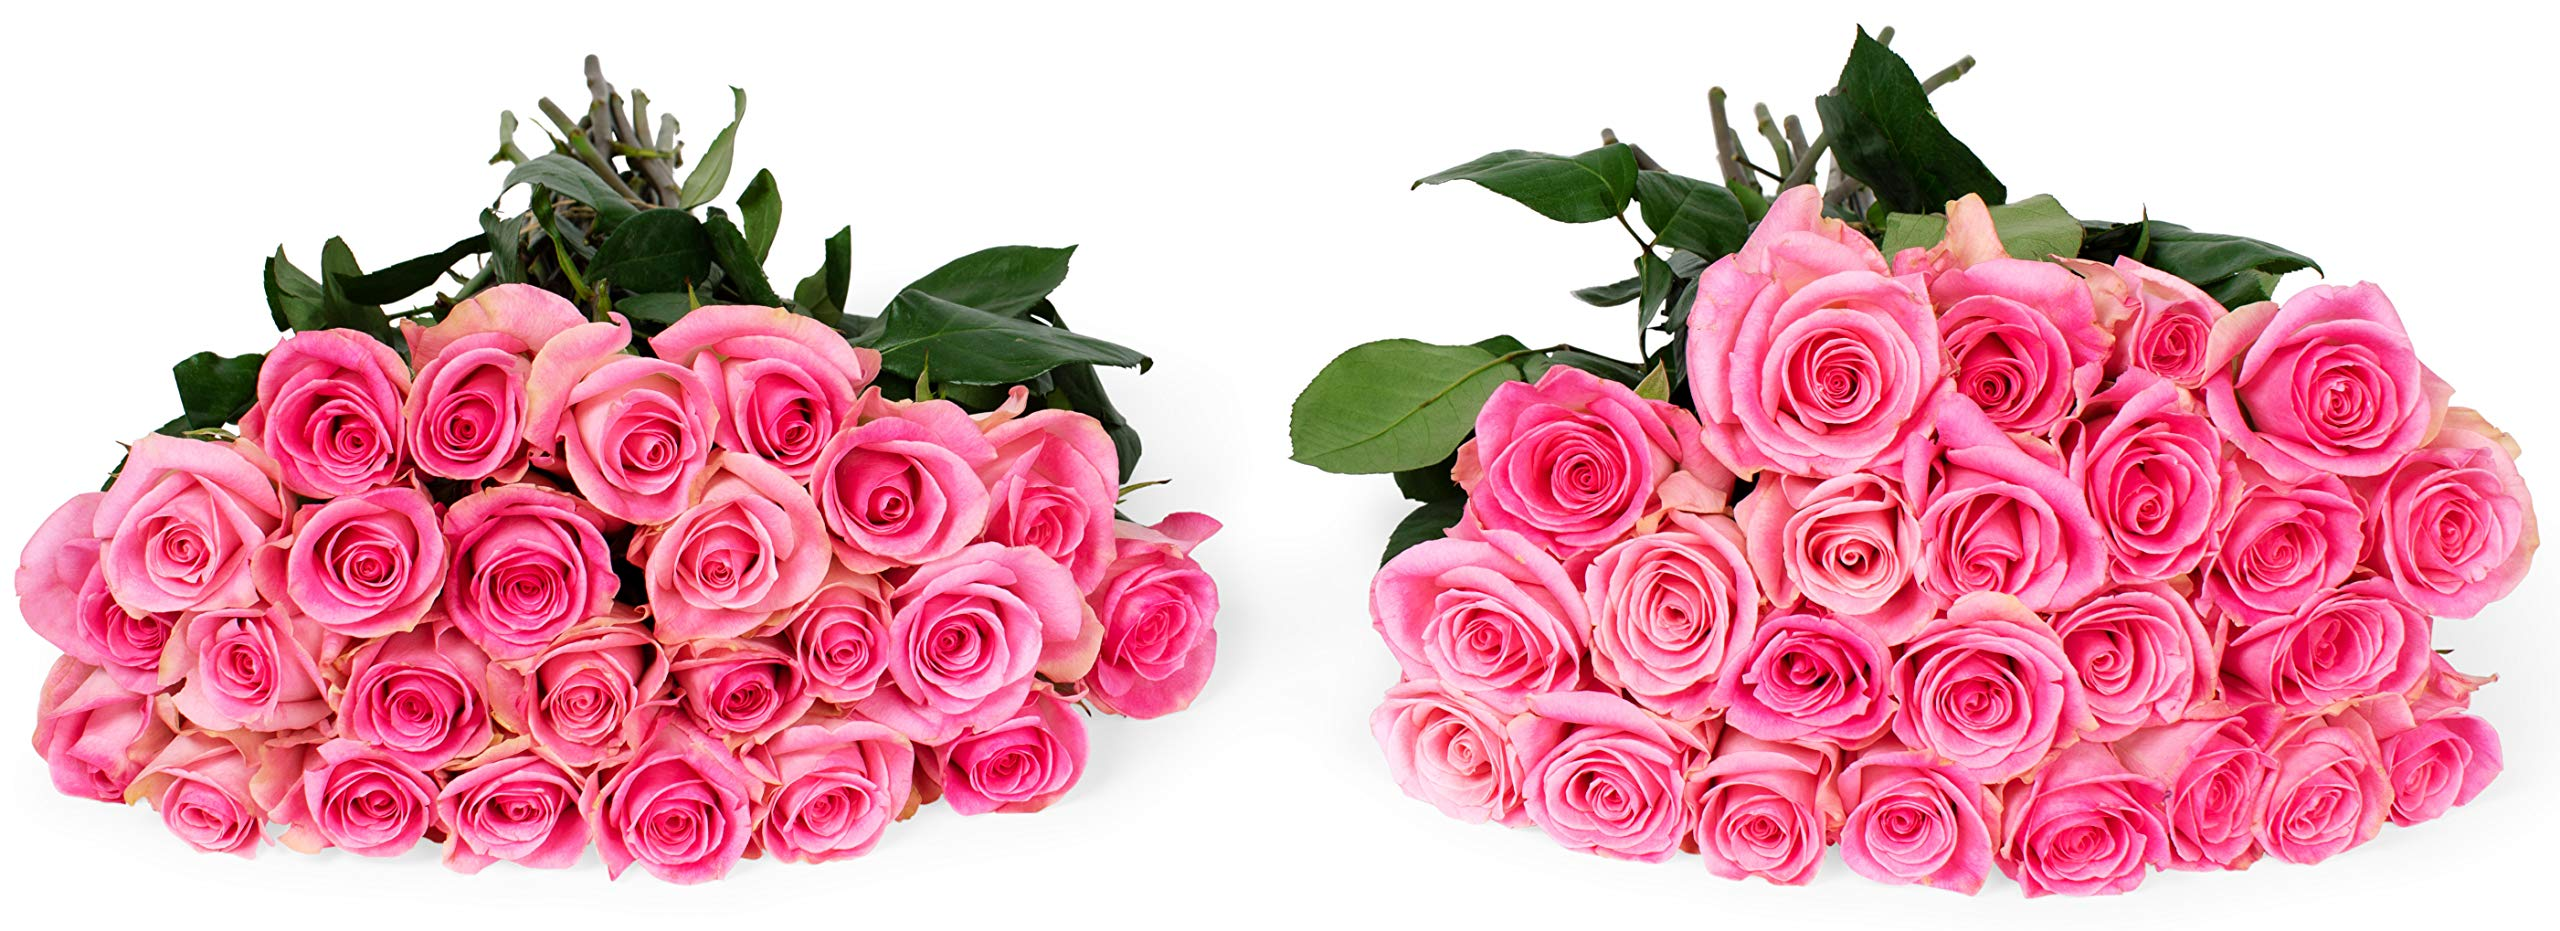 Benchmark Bouquets 50 Light Pink Roses Farm Direct (Fresh Cut Flowers) by Benchmark Bouquets